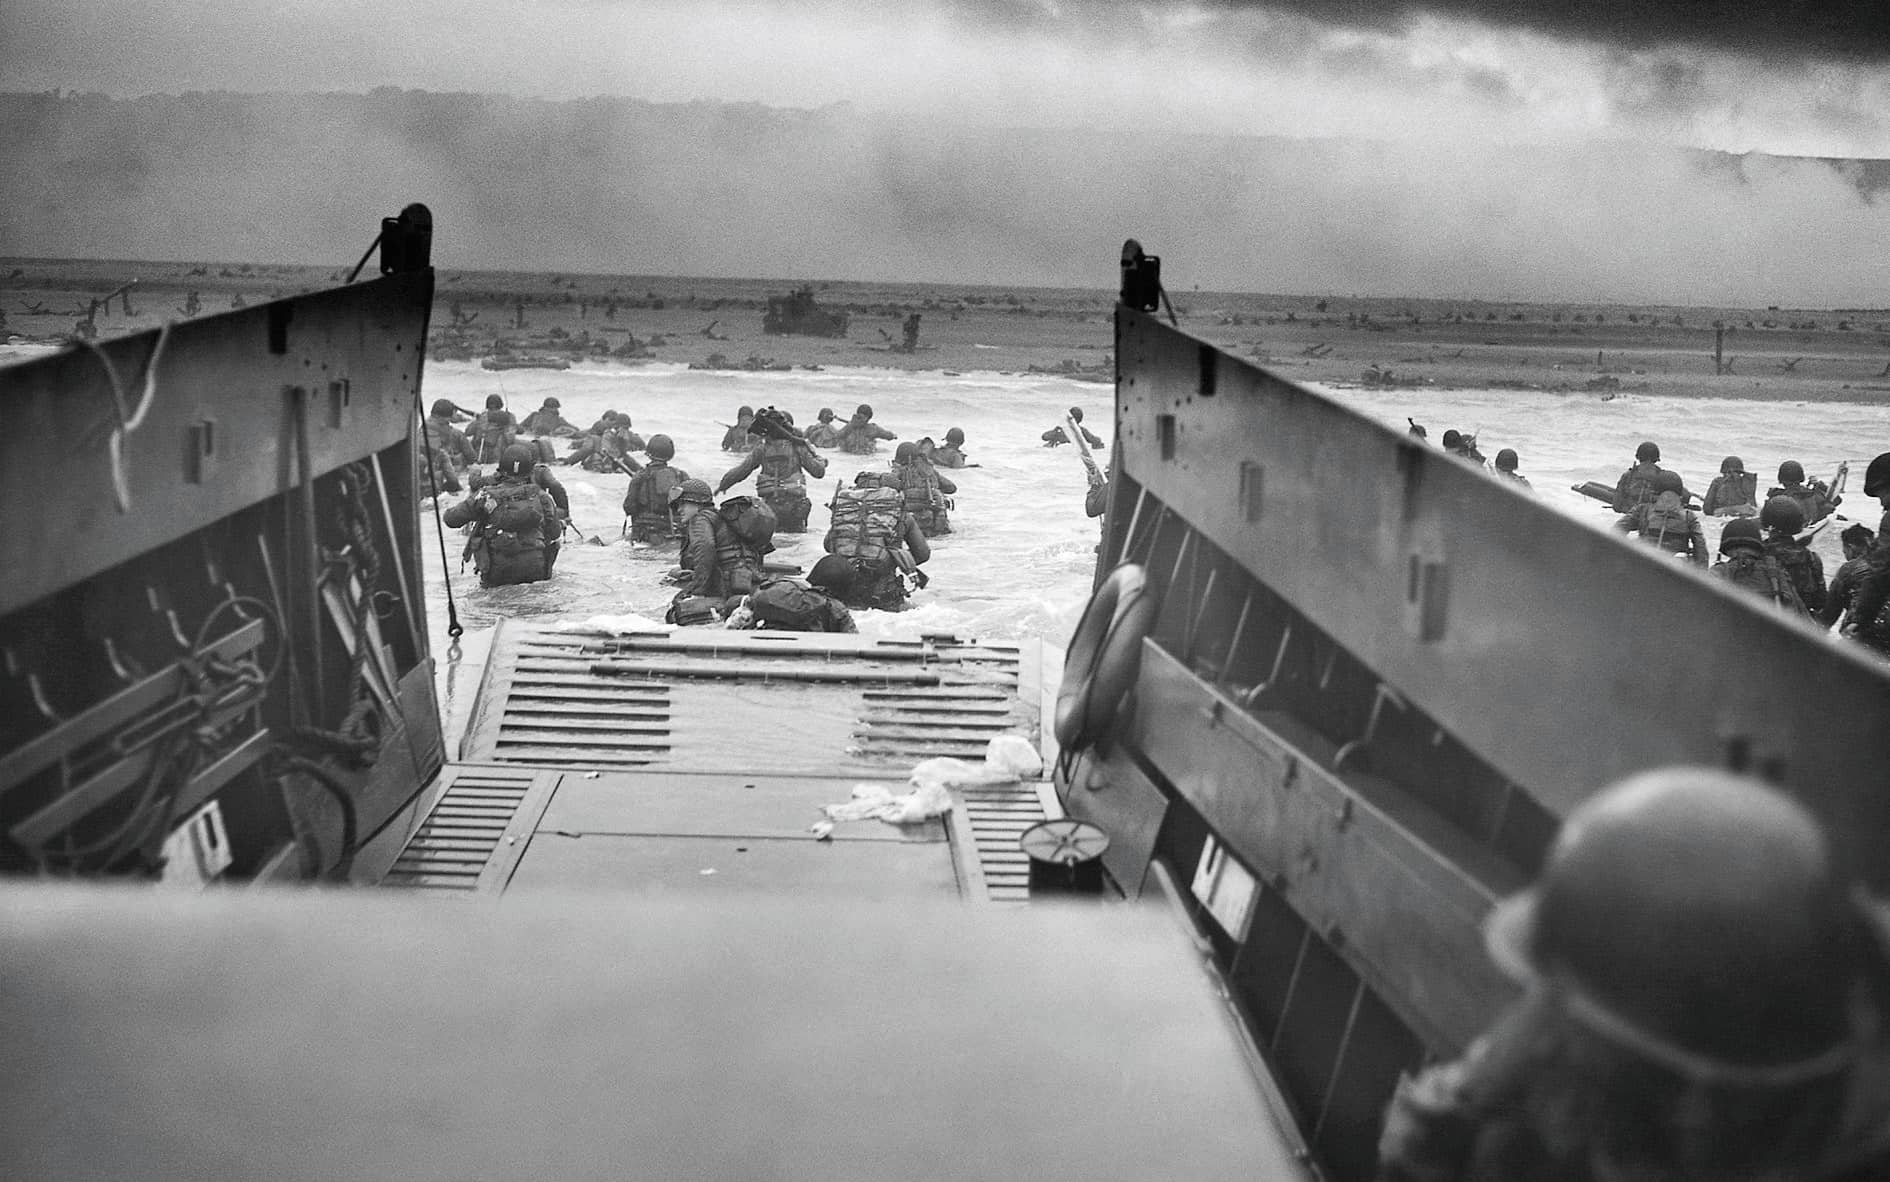 LETTER FROM NORMANDY: THE LEGACY OF THE LONGEST DAY